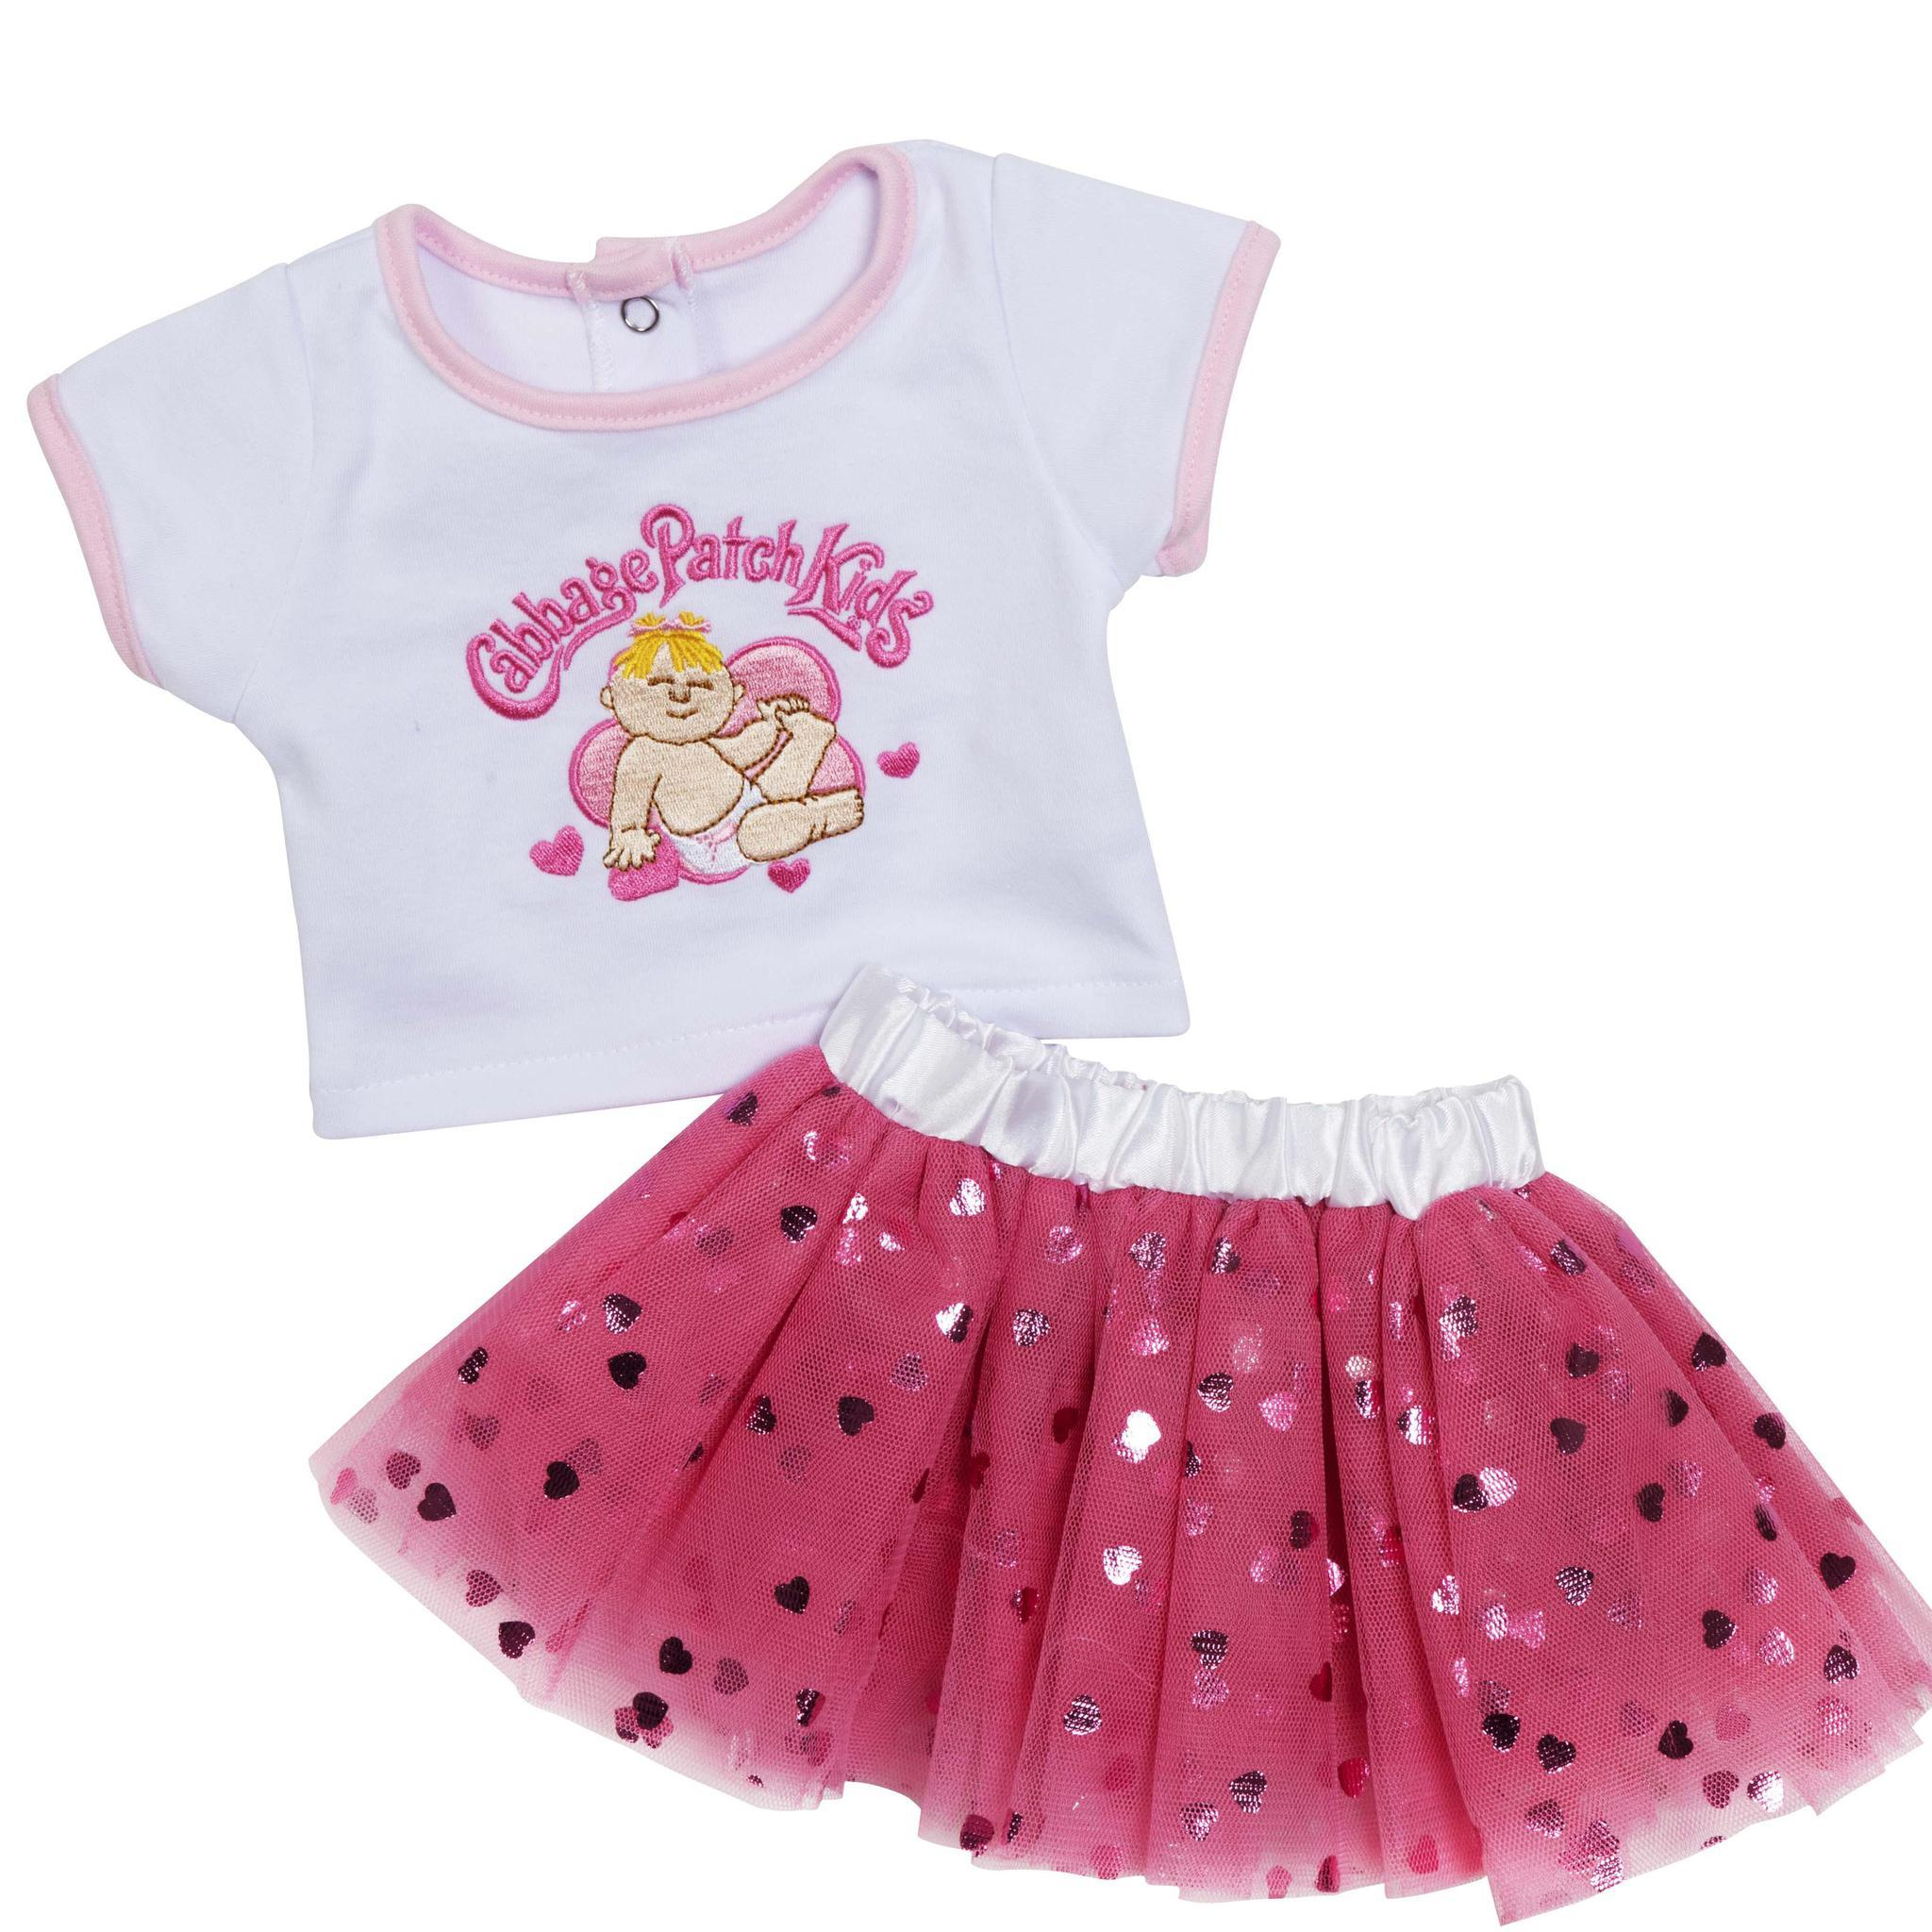 BabyLand Collection C Outfit Pink Heart Tutu